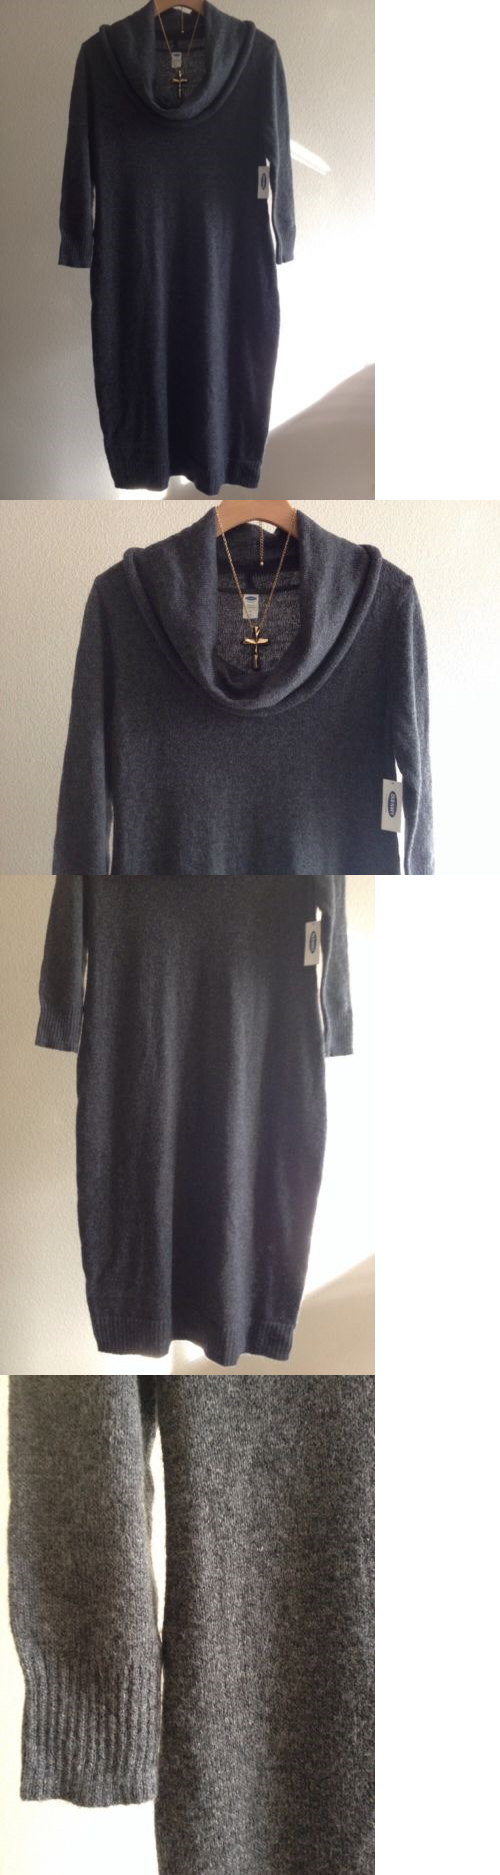 Sweaters 11538: Nwt Old Navy Cowl Neck Maternity Sweater Dress Sz ...